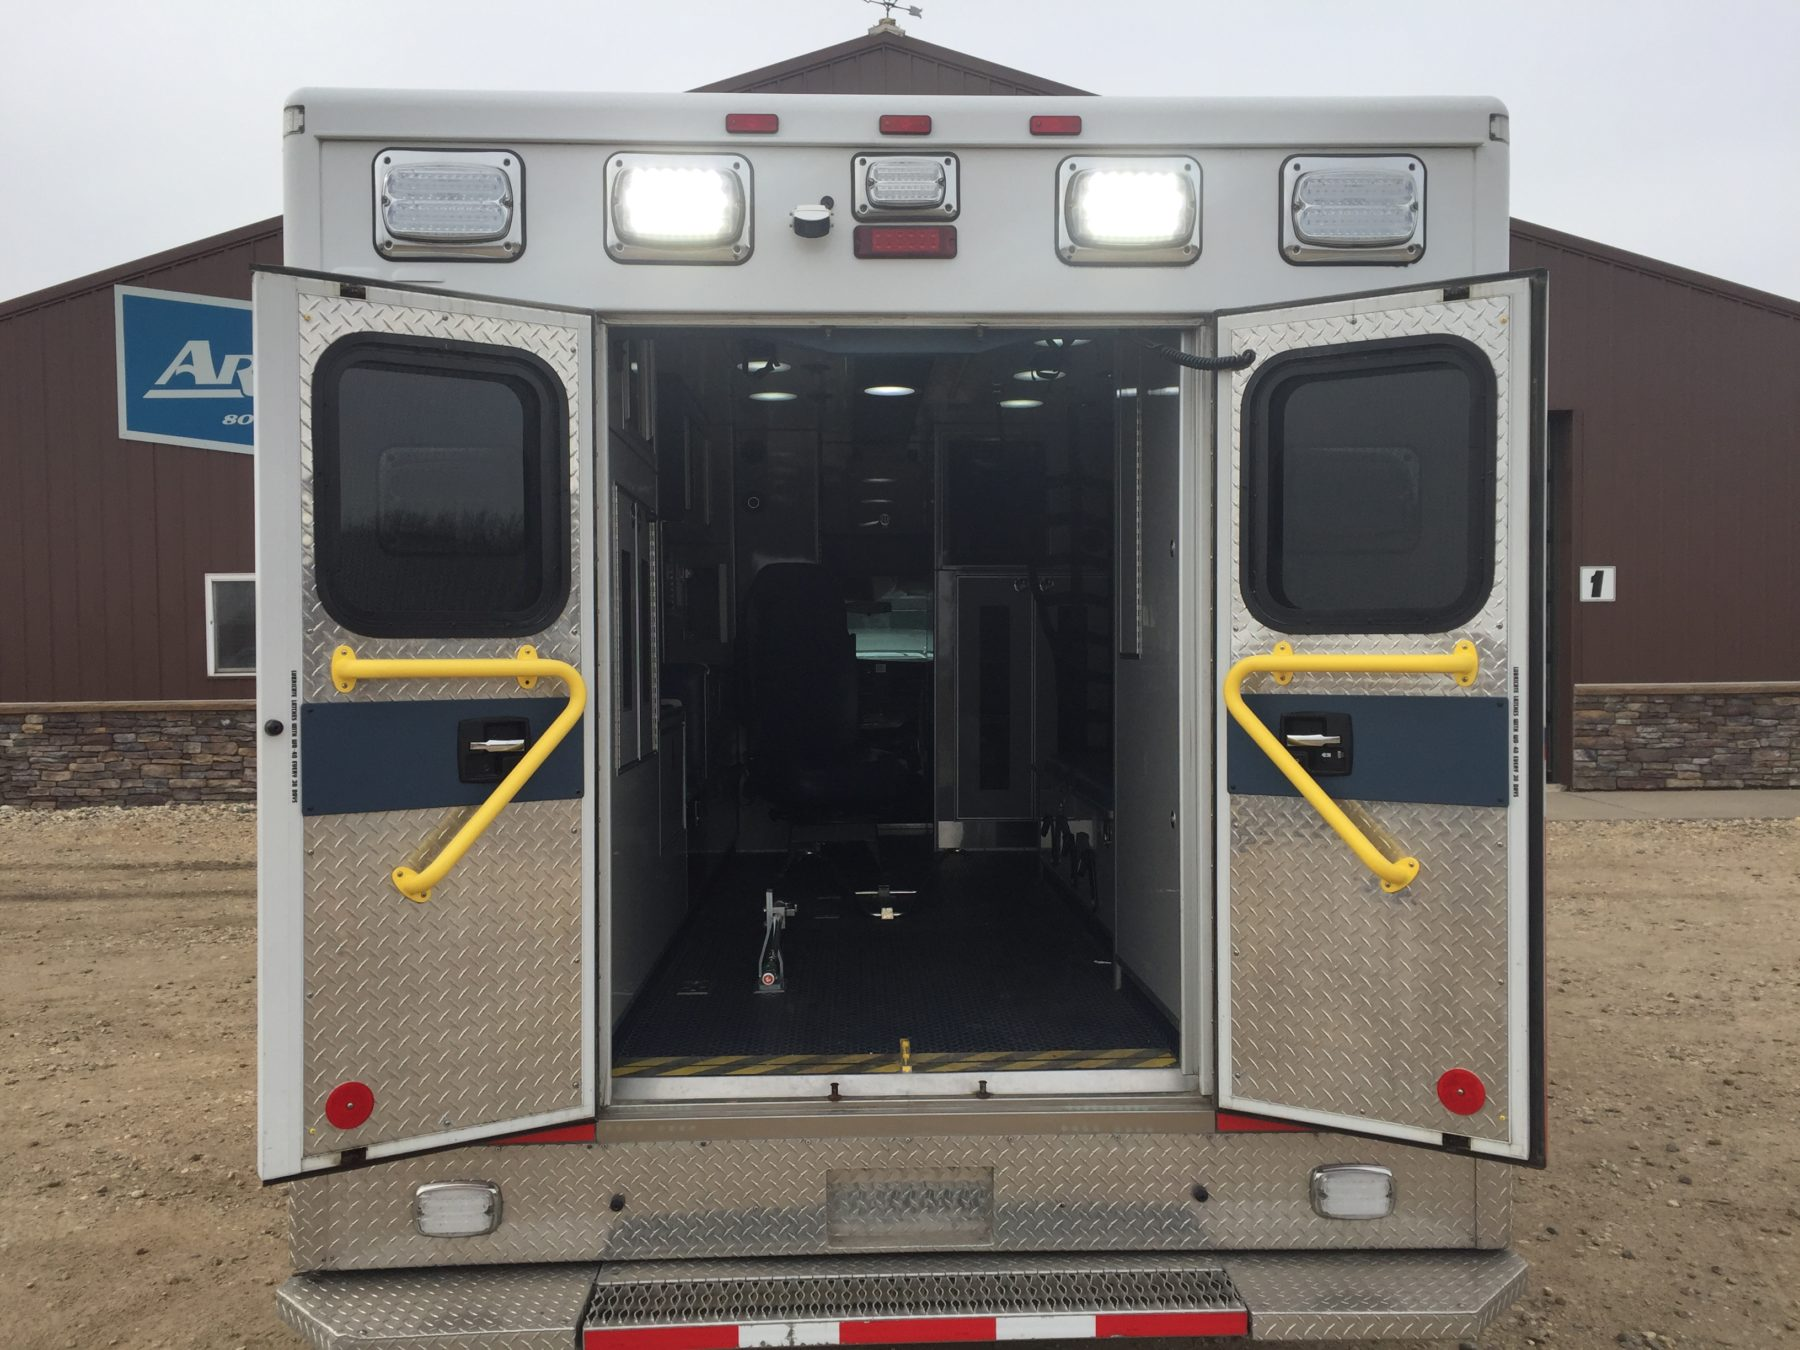 2012 Chevrolet G4500 Type 3 Ambulance For Sale – Picture 9